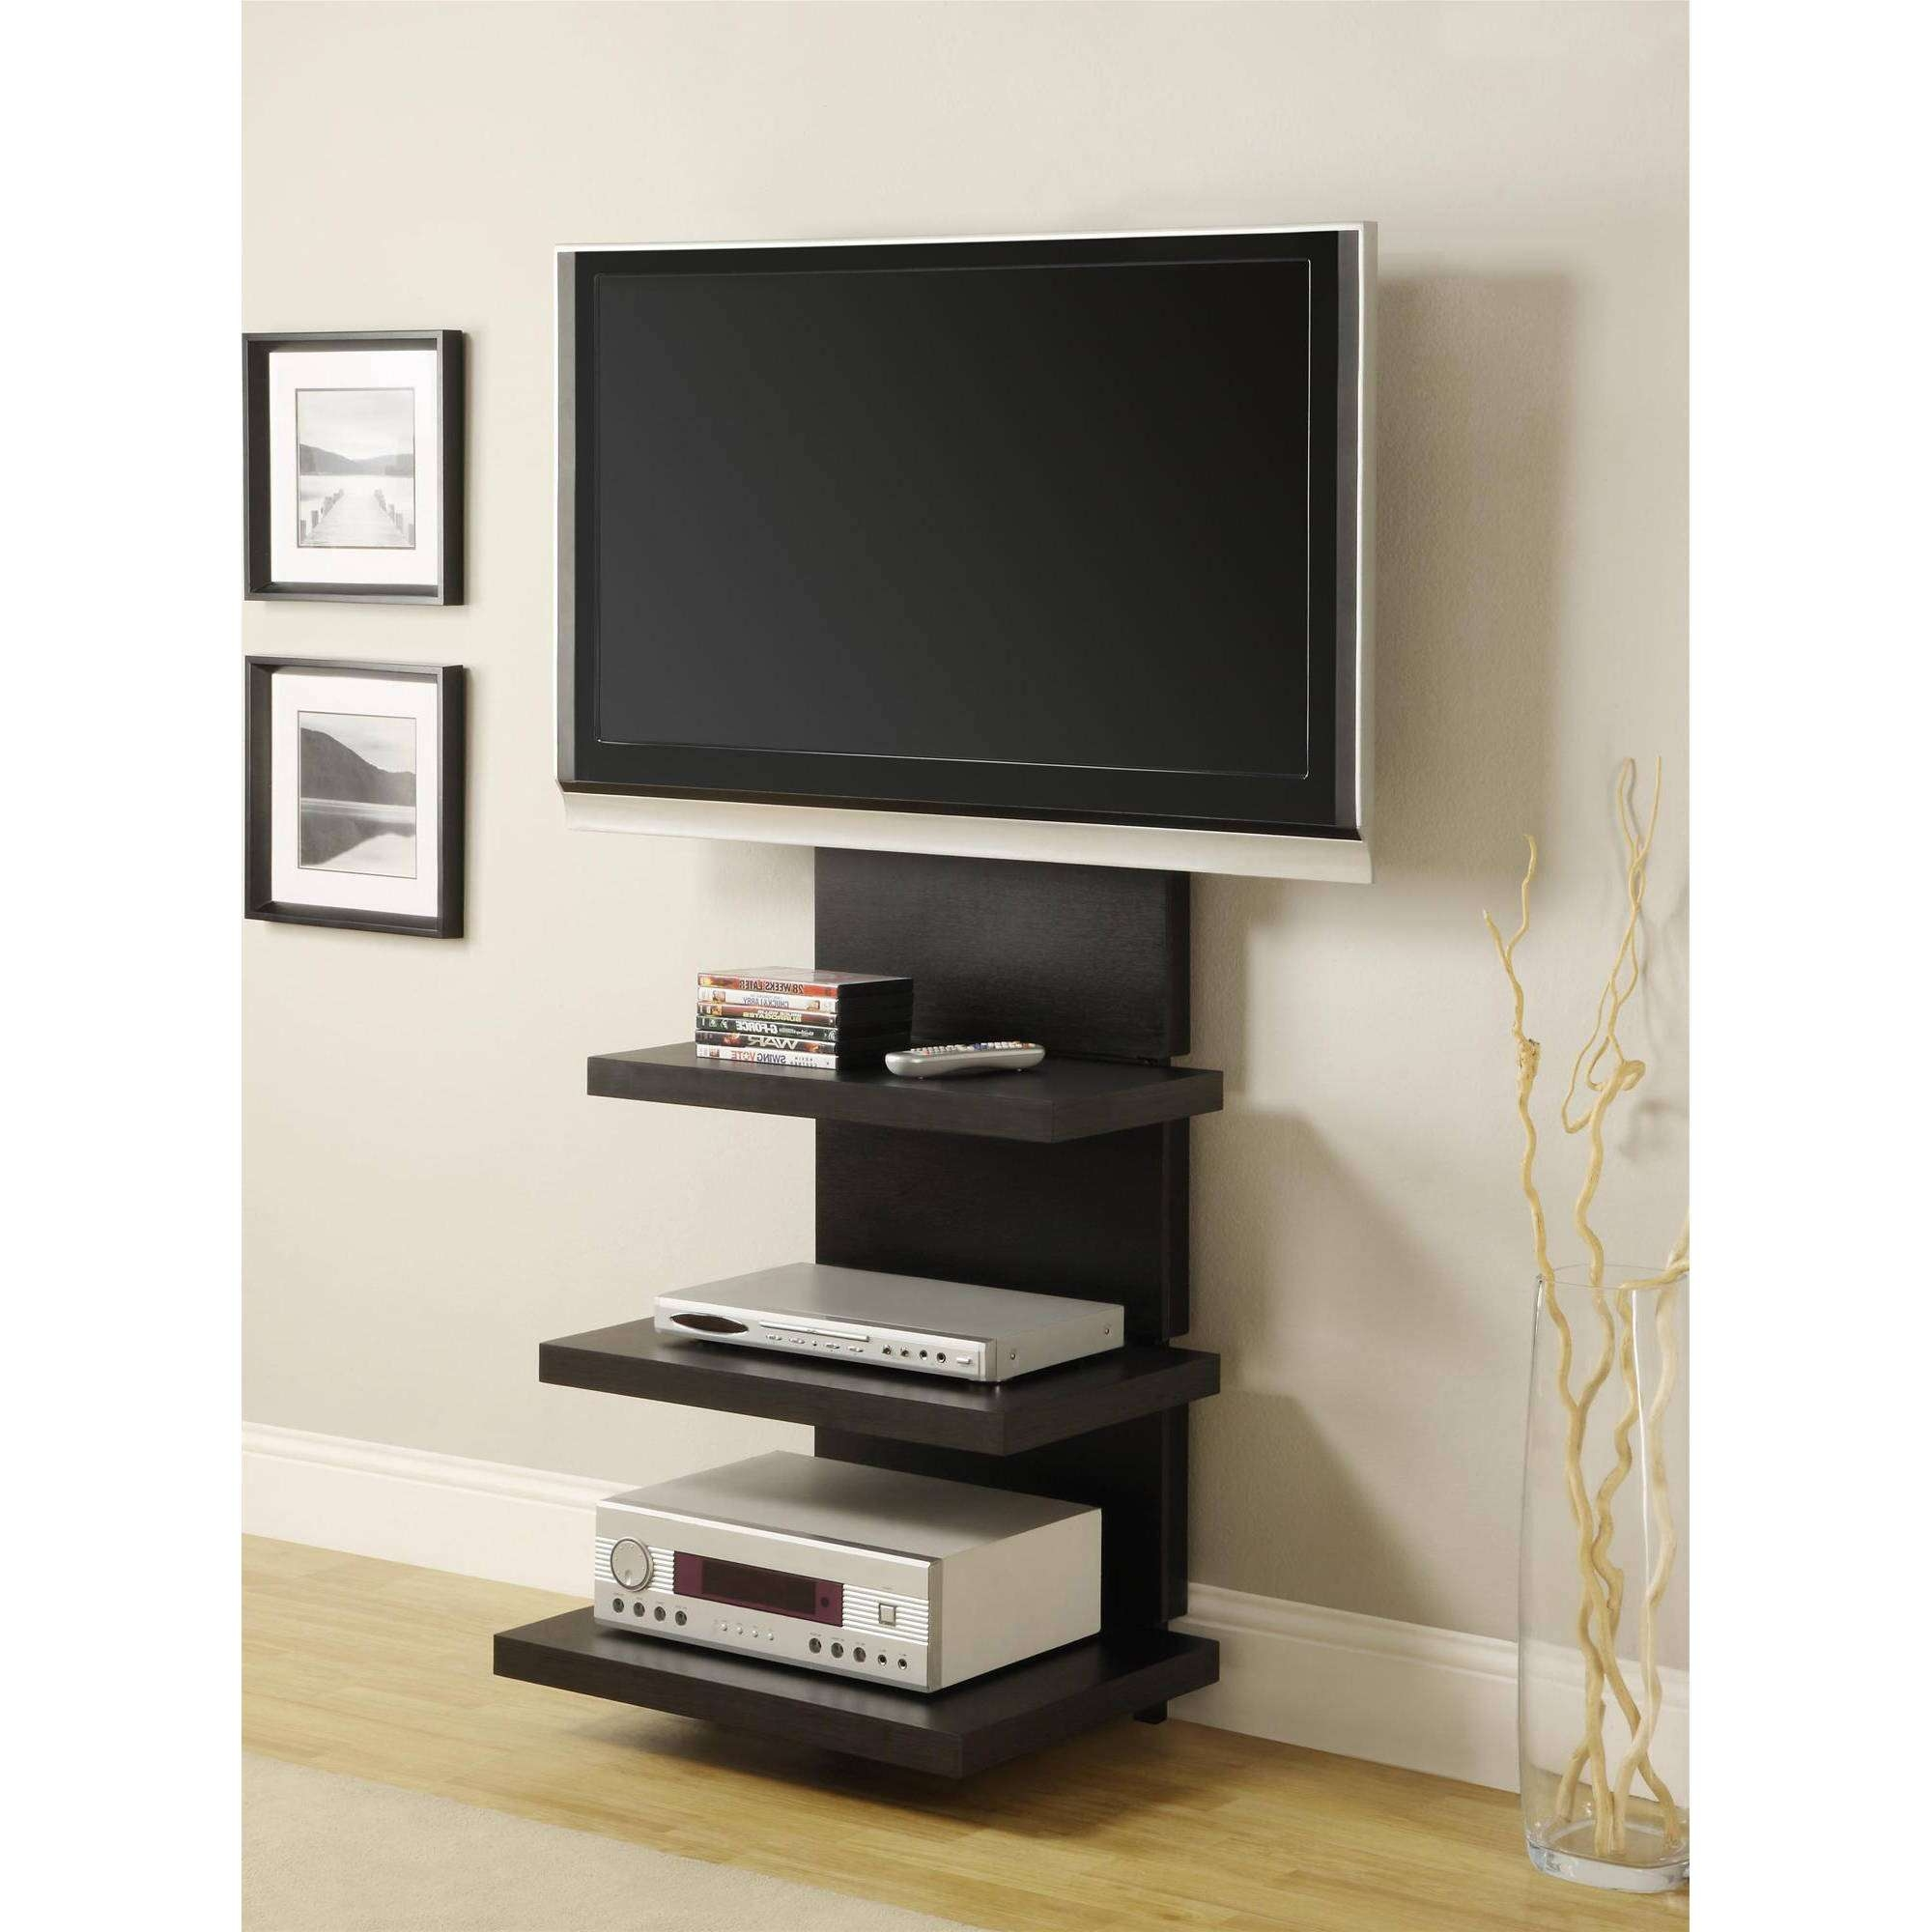 Ameriwood Home Elevation Altramount Tv Stand For Tvs Up To 60 In Tall Black Tv Cabinets (View 7 of 20)